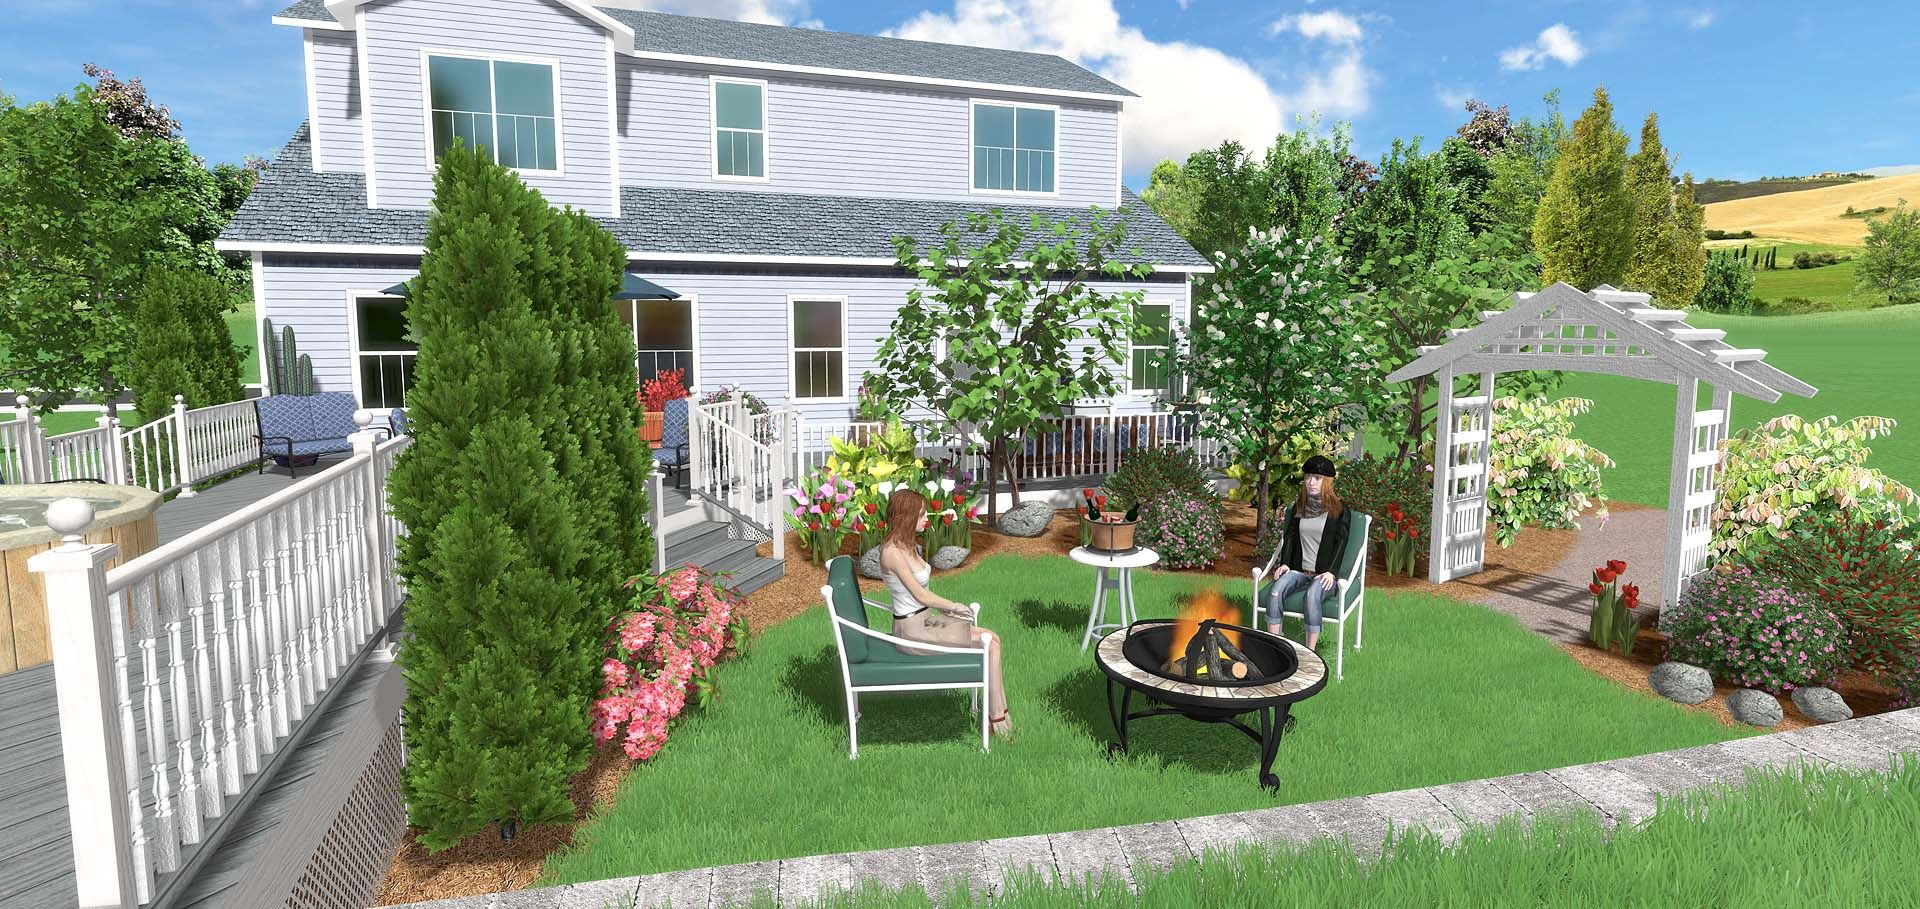 Realtime Landscaping Pro Was Designed From The Ground Up To Be